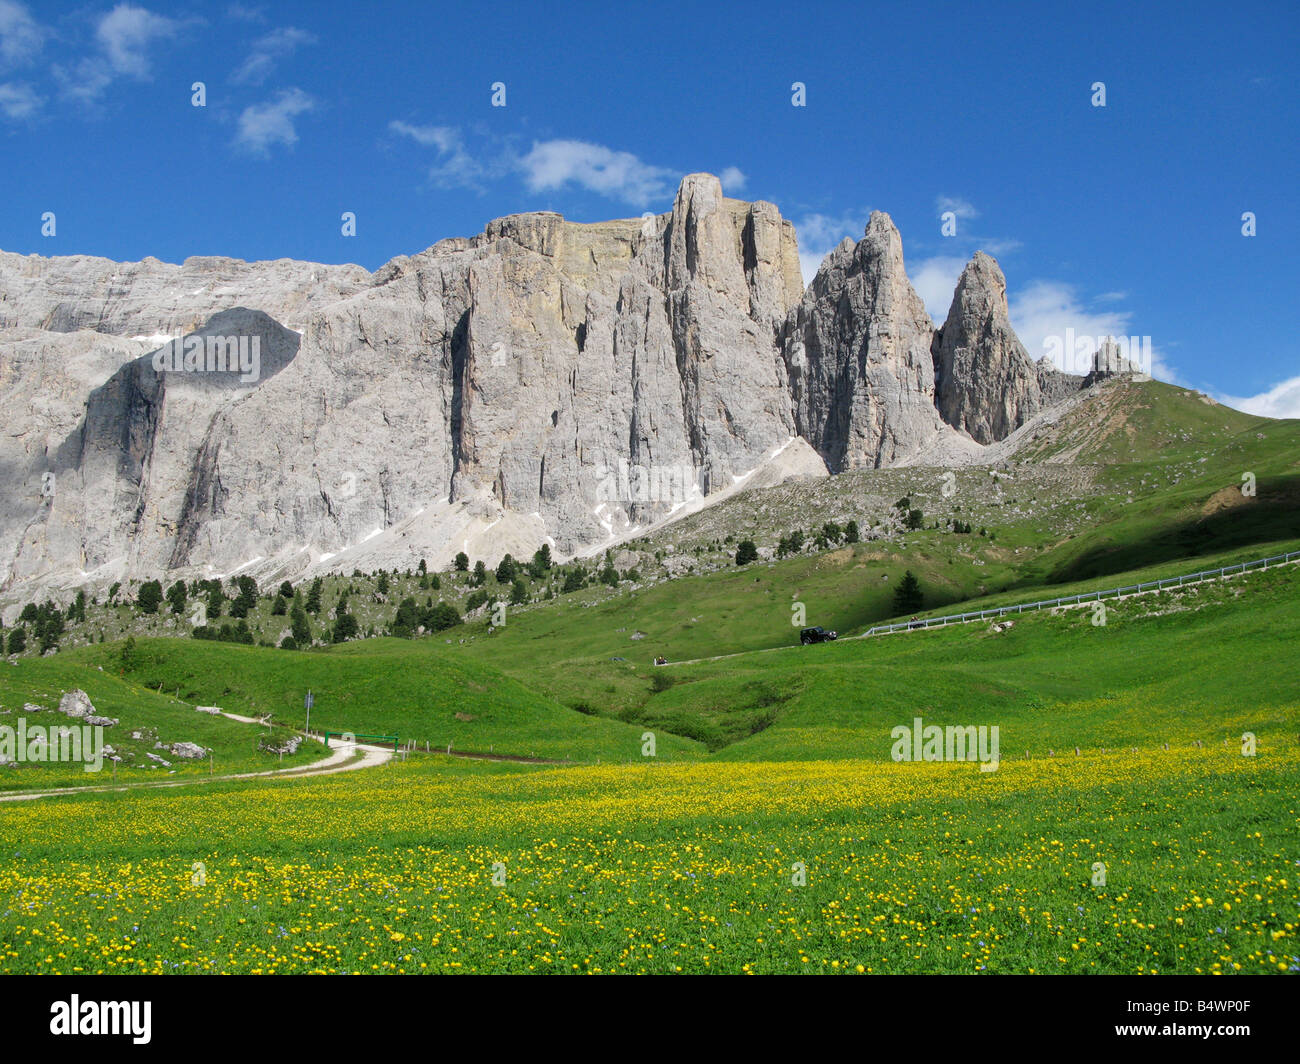 The Sella Group in the Dolomites, viewed from near Passo Sella, Italy Stock Photo